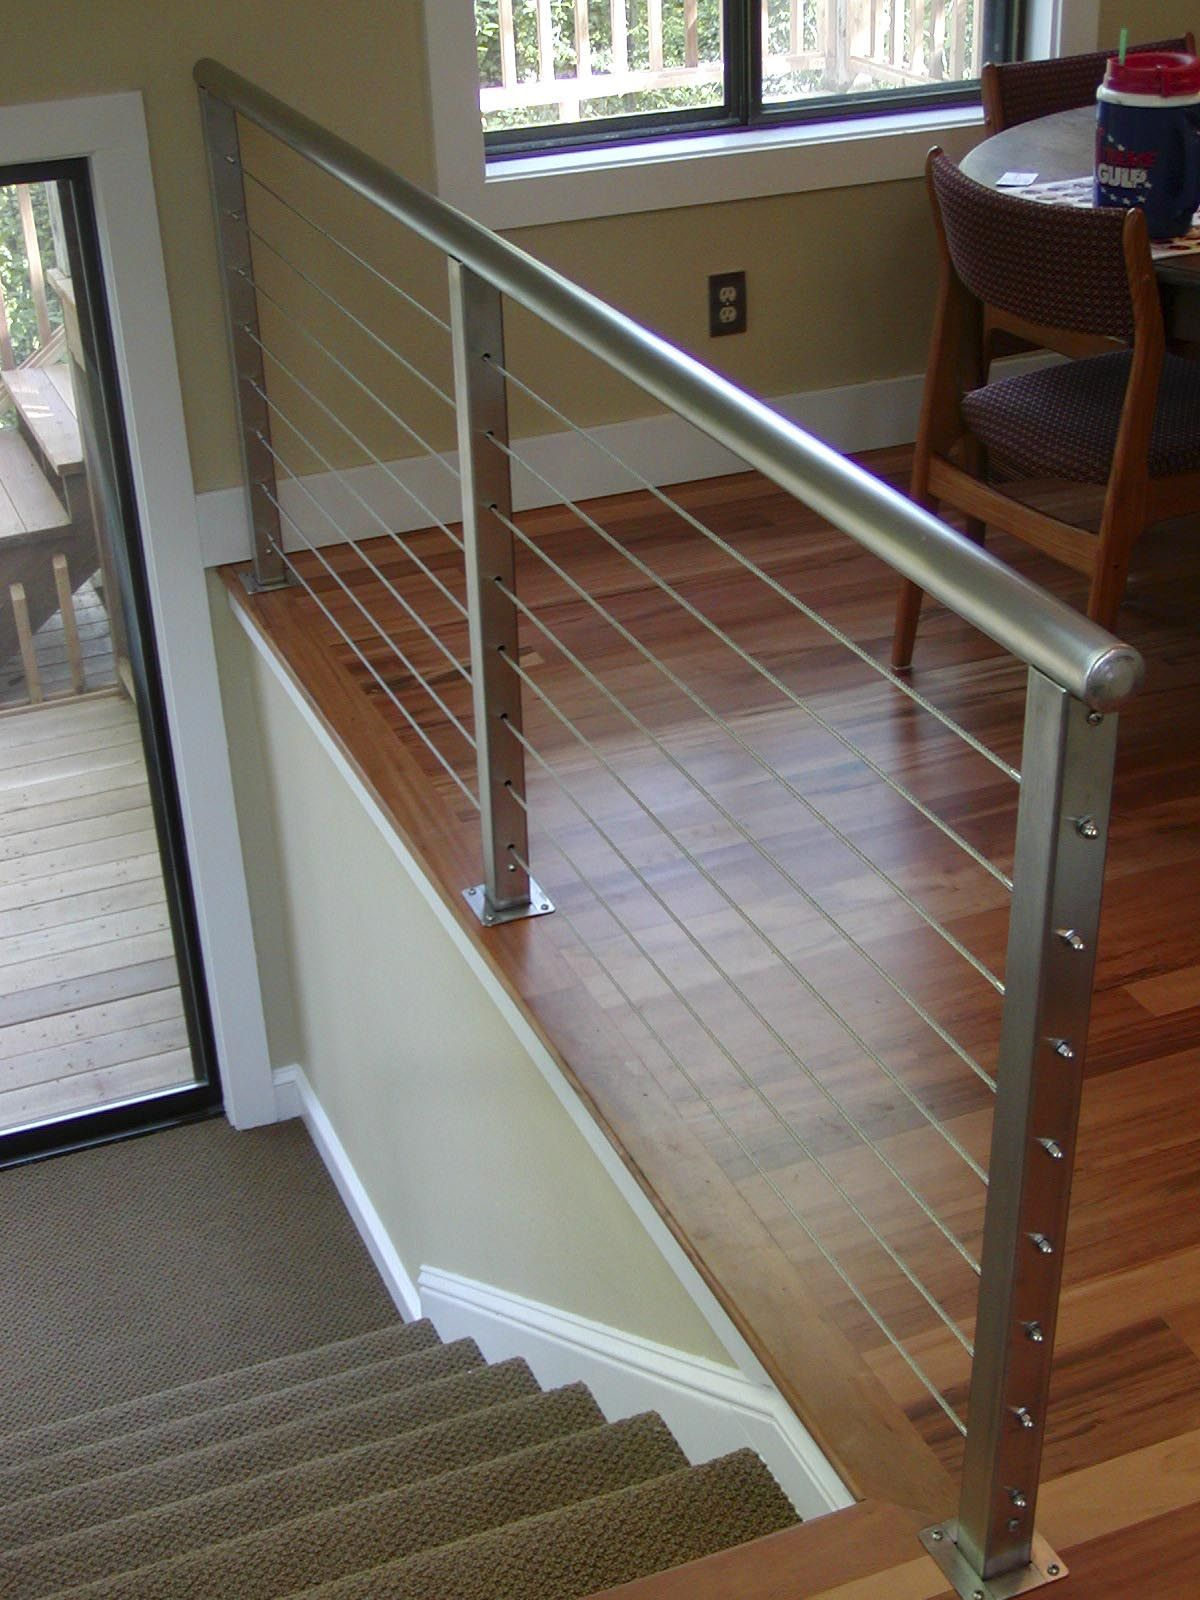 Google Image Result For Http Canonmetals Com Images Stainless | Cable Stair Railing Indoor | Exterior Irregular Stair | Vertical | Wood | 90 Degree Stair | Stainless